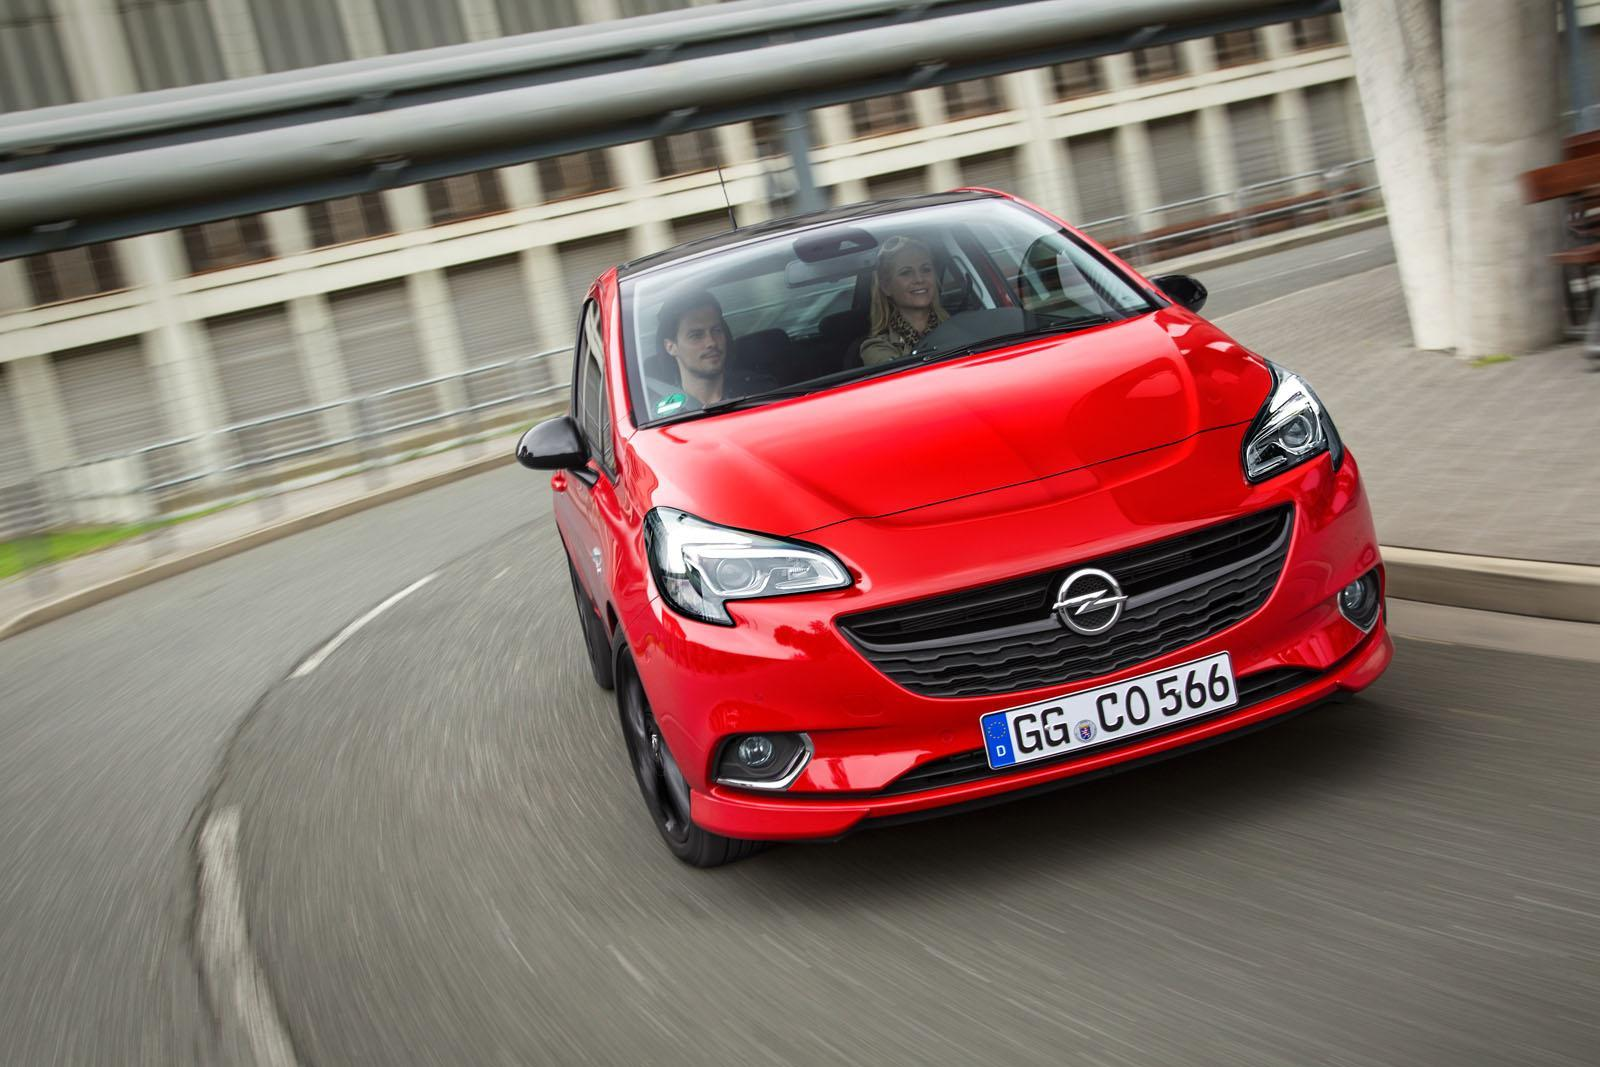 new opel corsa gets 1 4 turbo version with 150 hp autoevolution. Black Bedroom Furniture Sets. Home Design Ideas